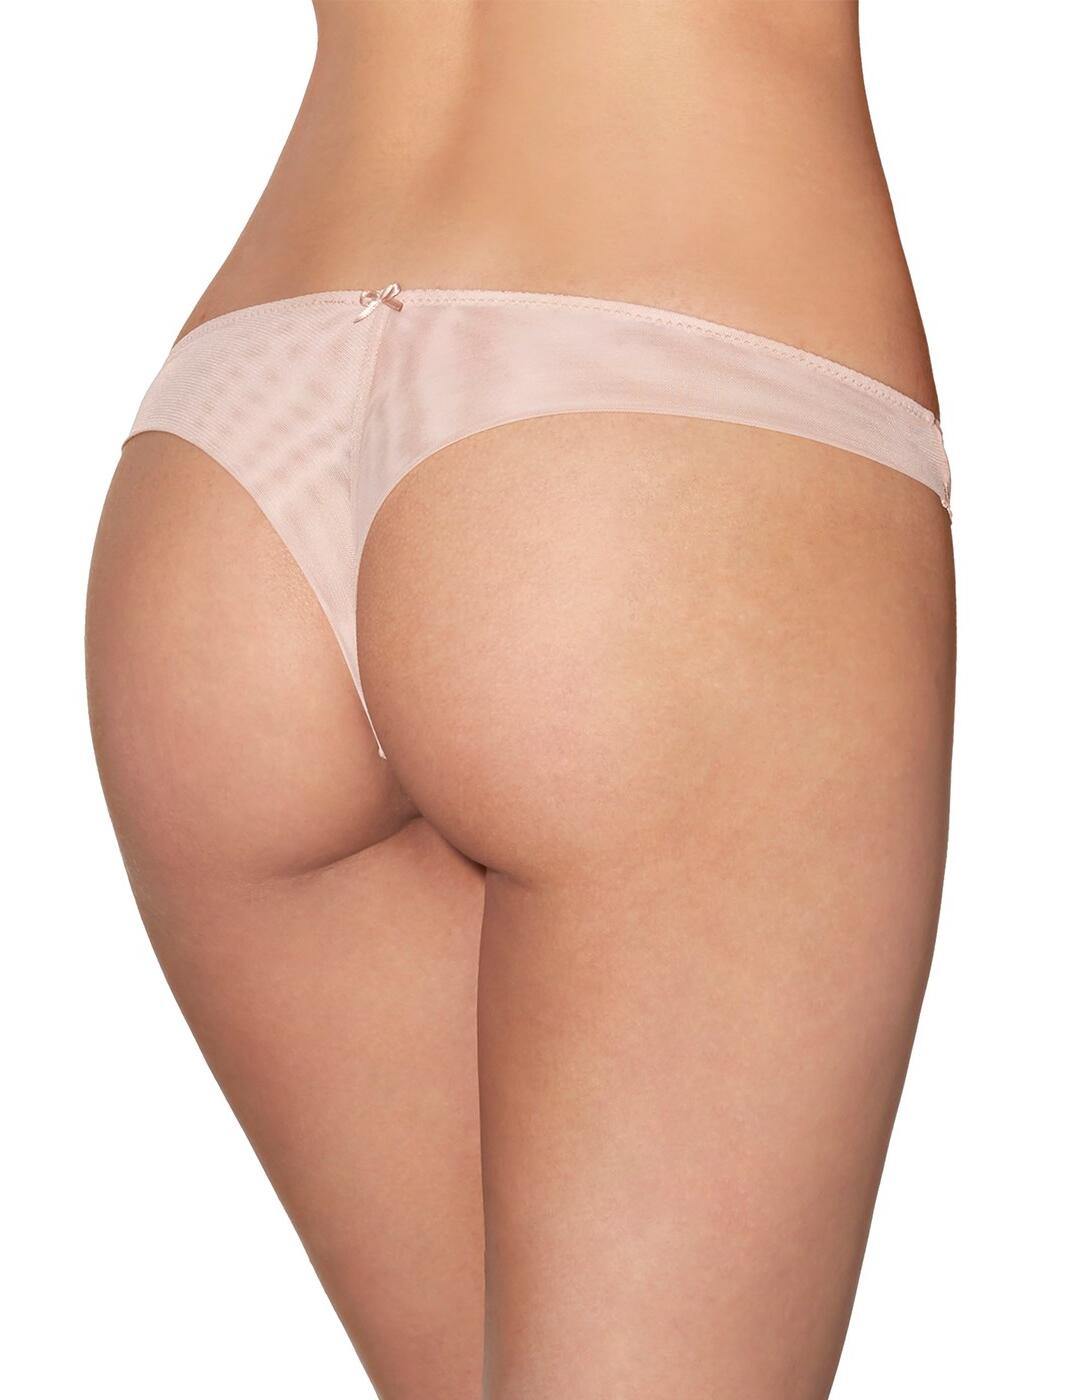 Aubade Divin Bouquet Tanga Briefs Knickers FB26 New Womens Luxury Lingerie